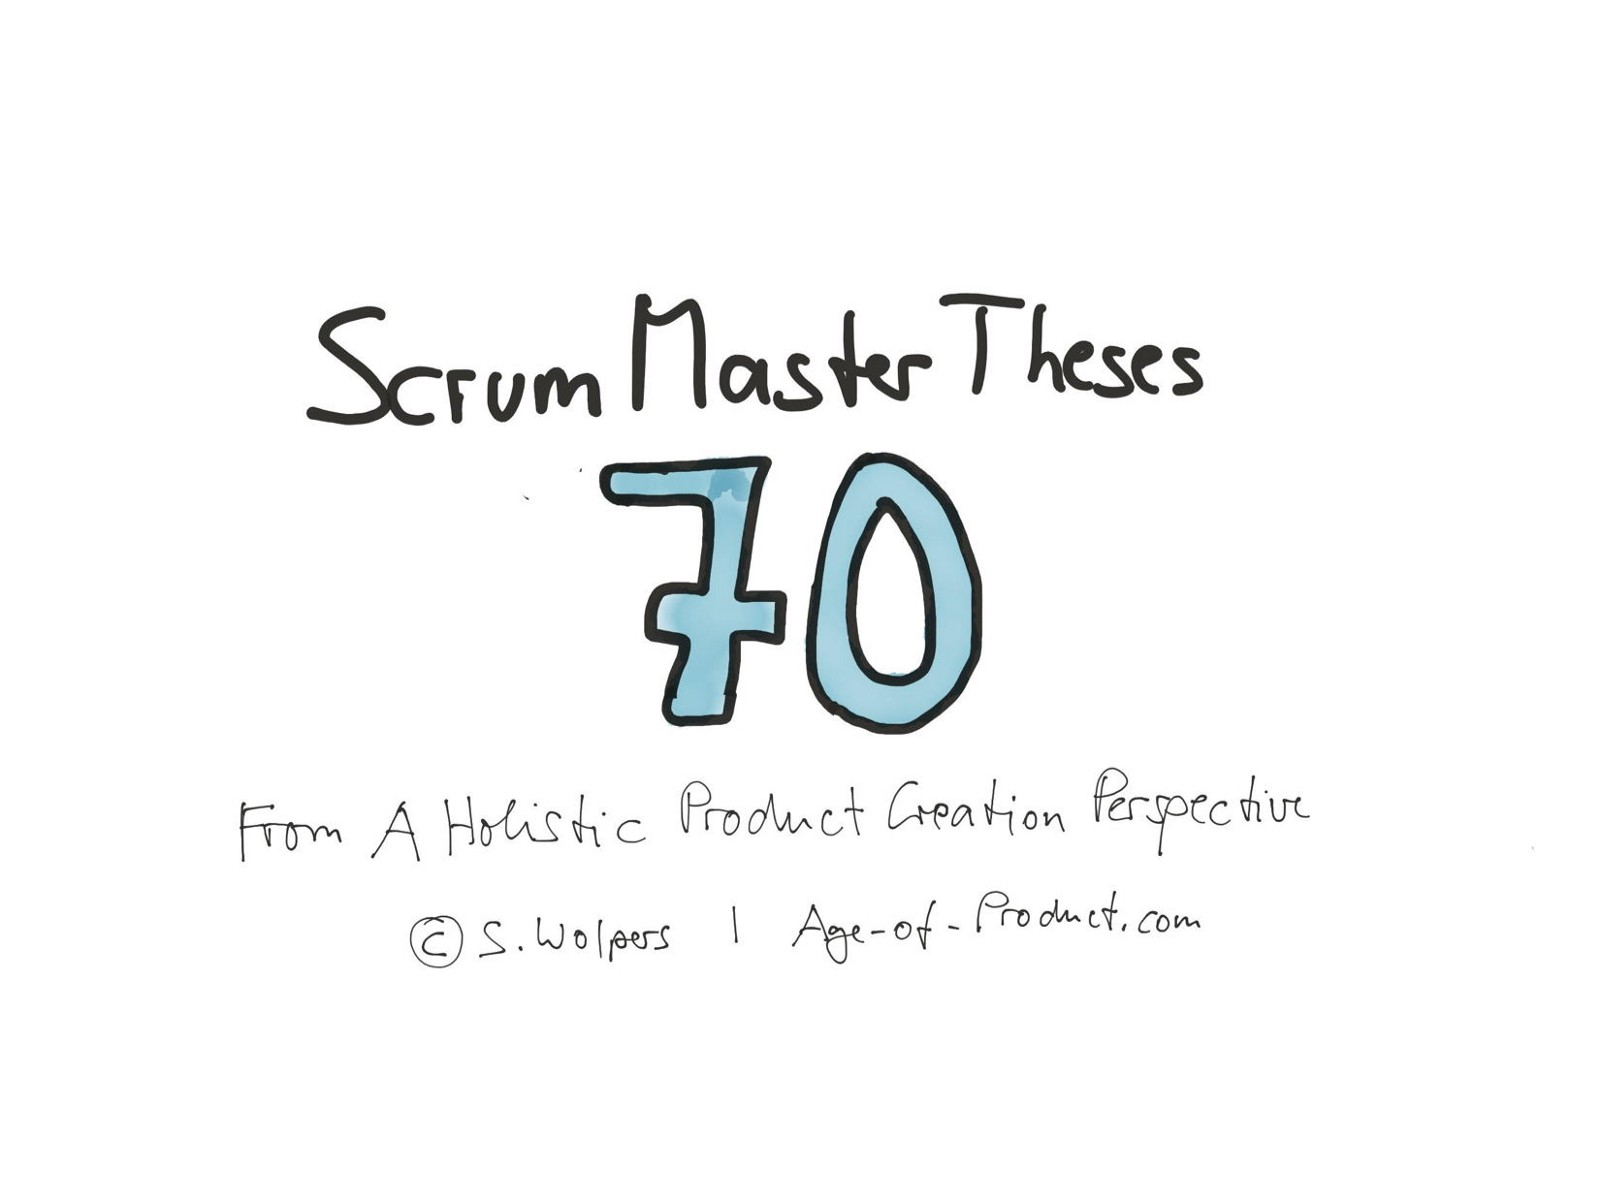 /scrum-master-theses-ff208191270d feature image